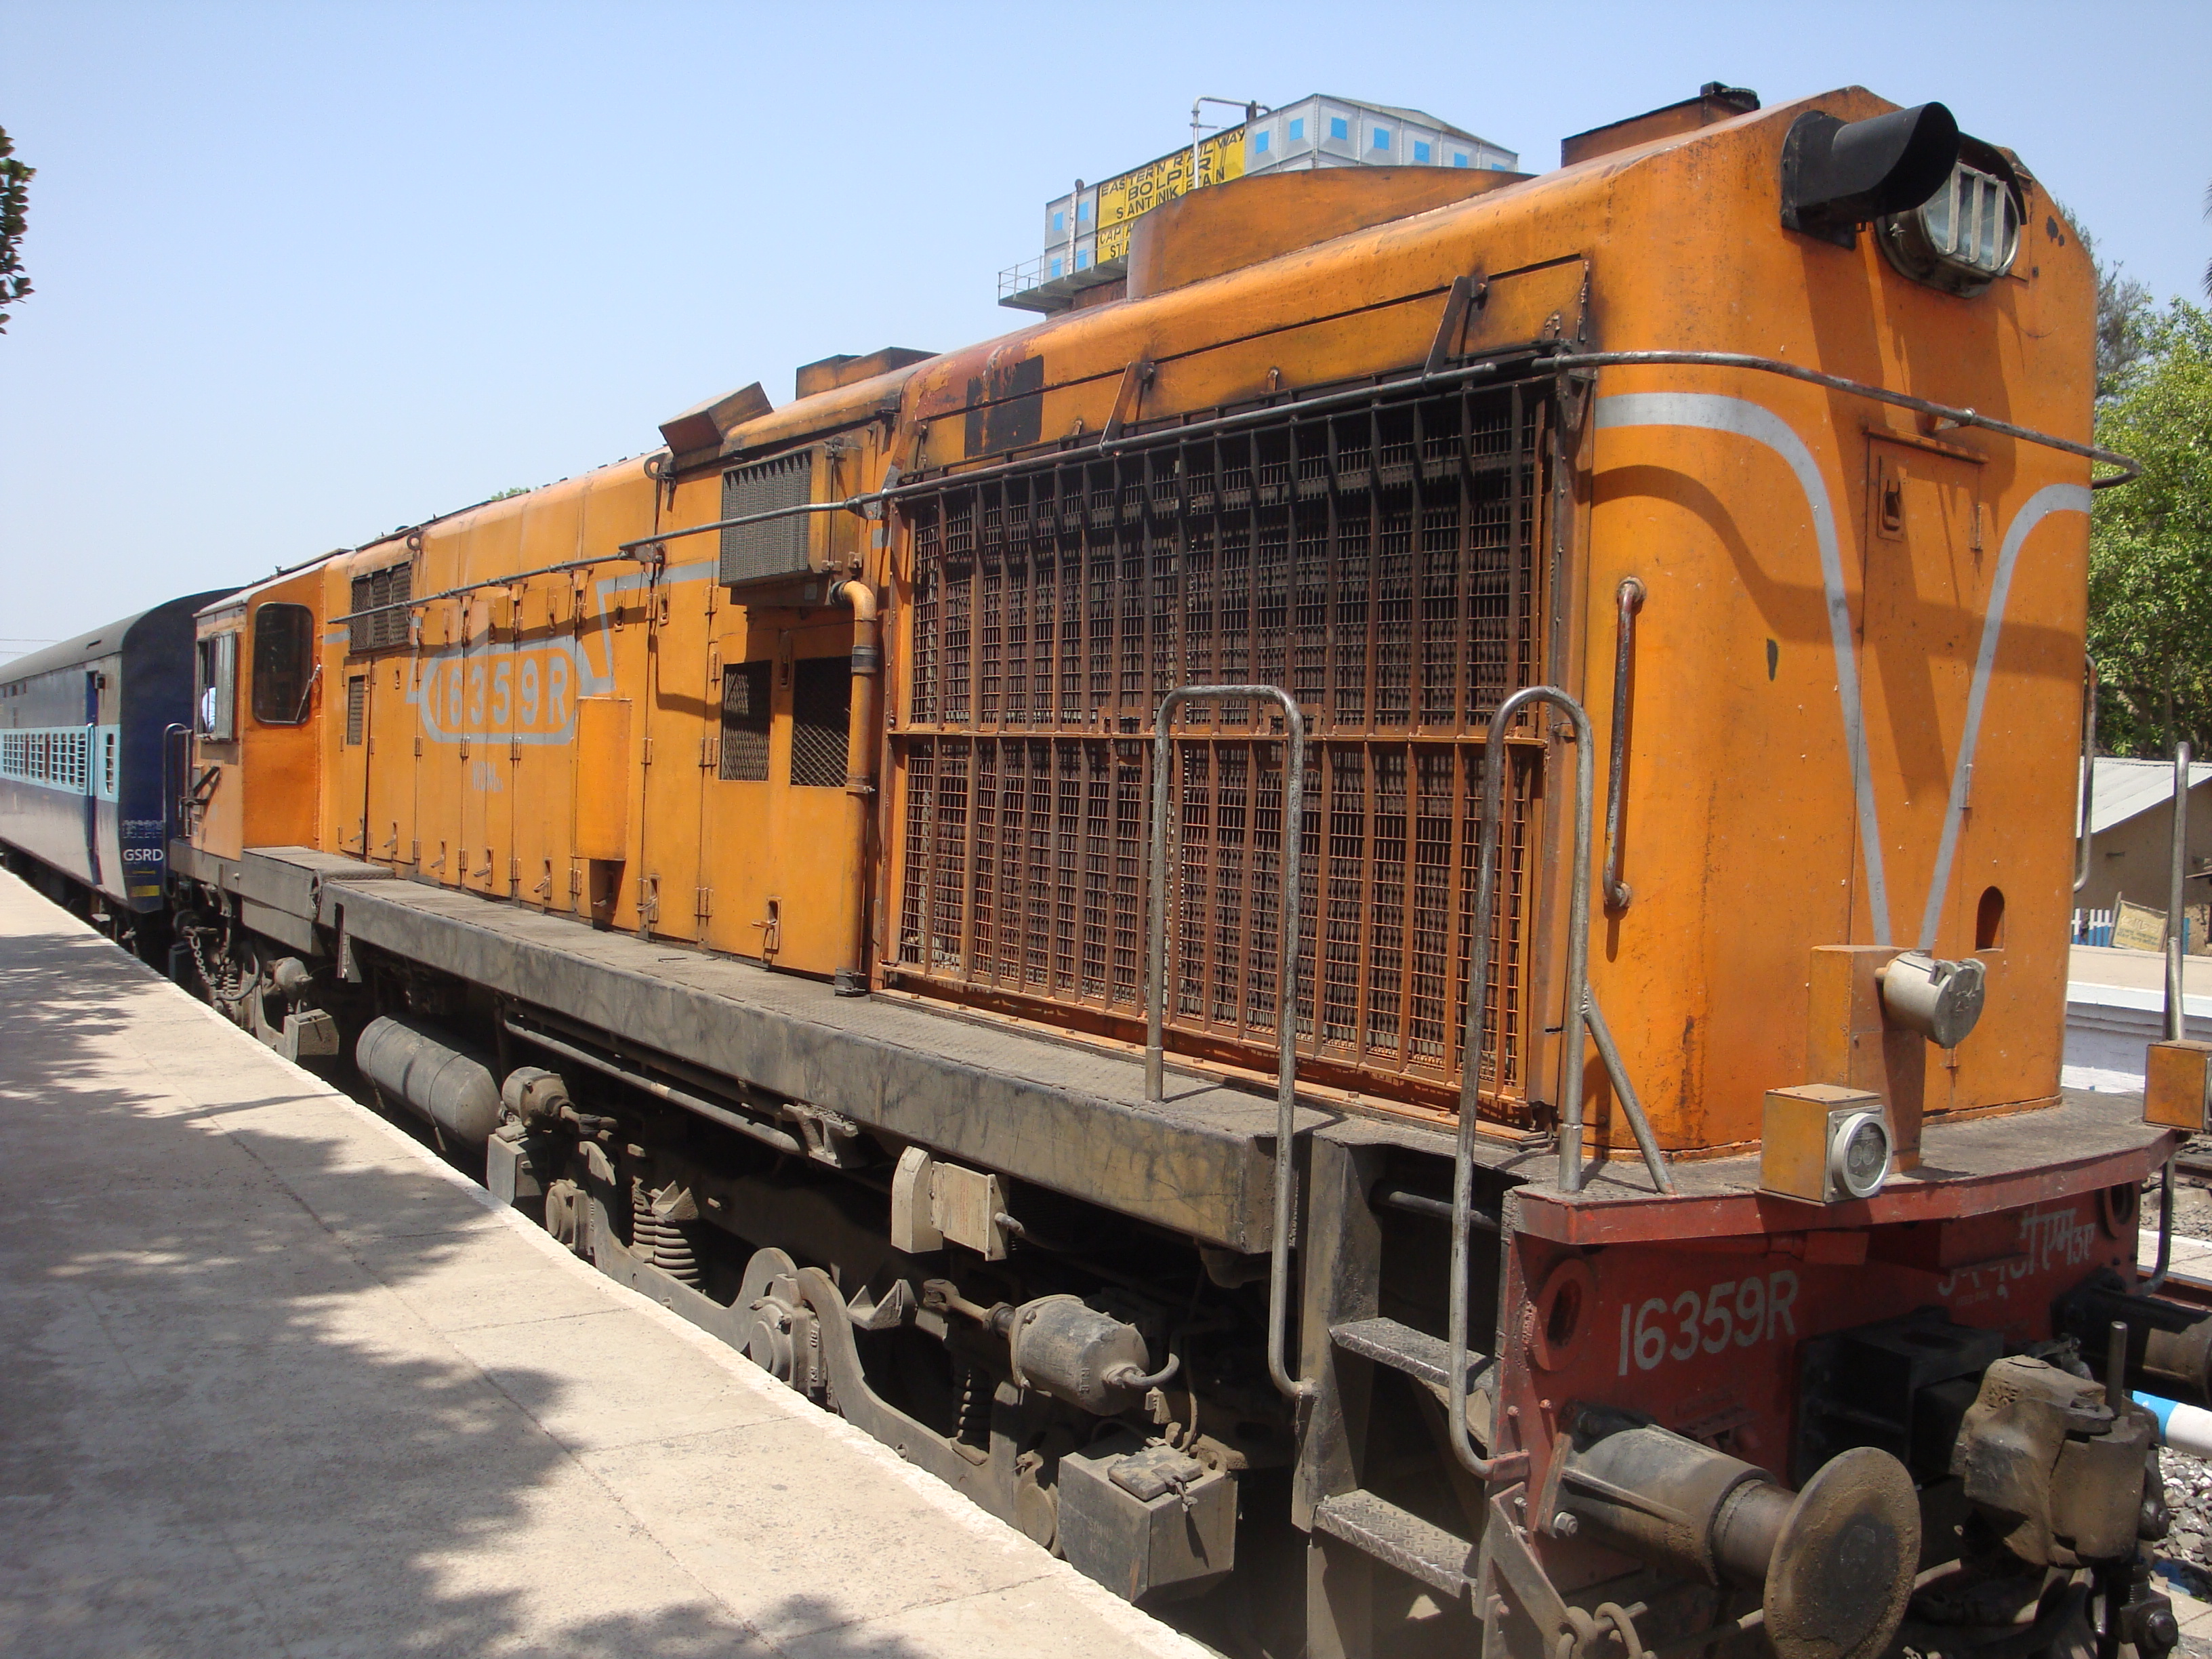 Indian Goods Train Engine